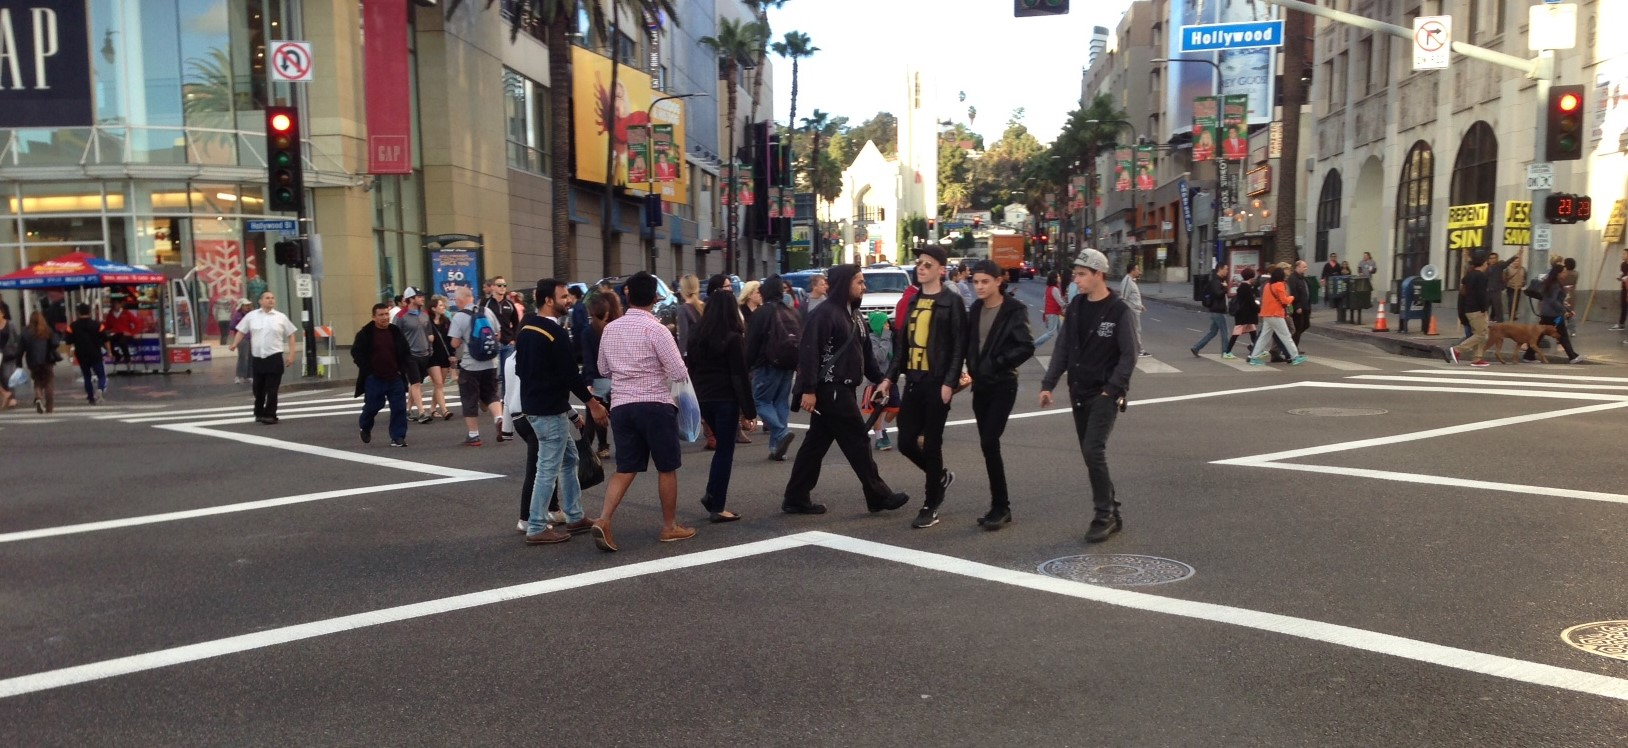 Картинки по запросу The scramble crosswalk at Hollywood Blvd